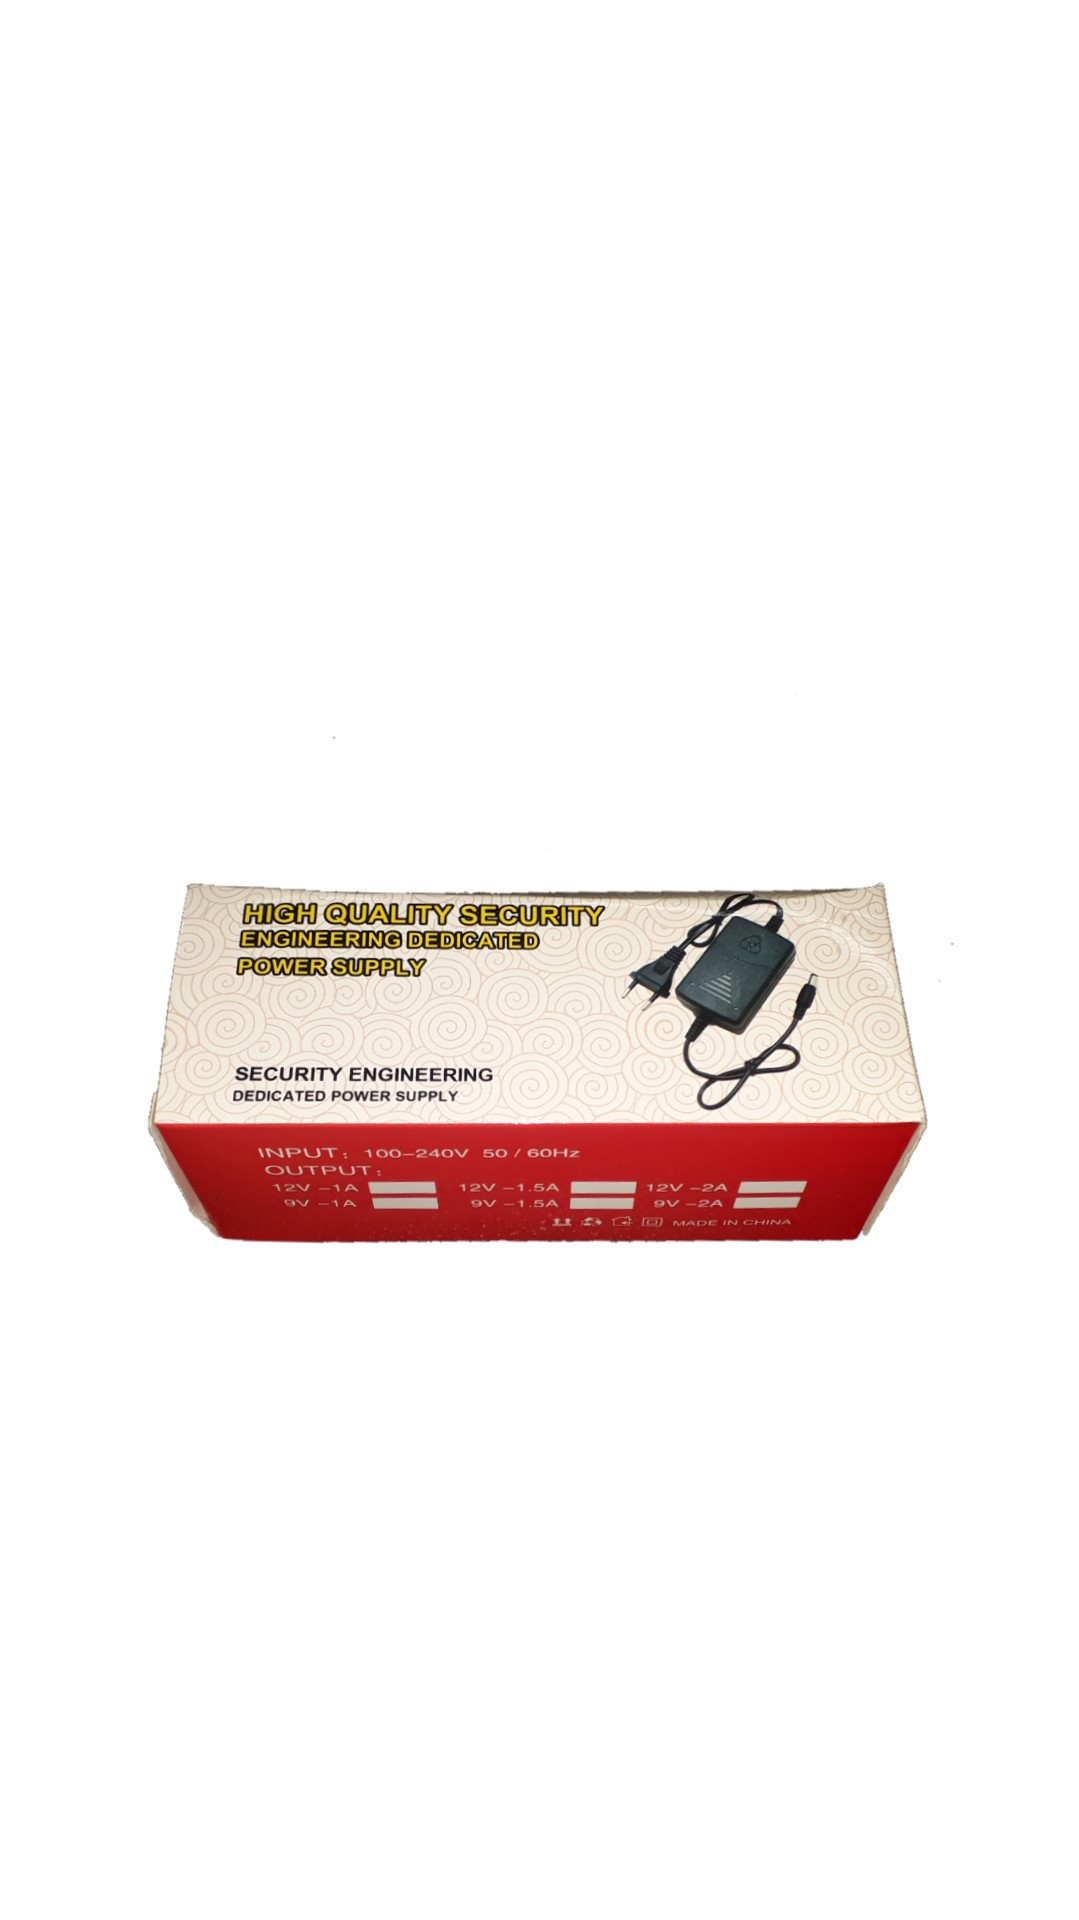 Fonte Supertech Chaveada P/Audio Solution 3 12v 5a. 90a240 Automática